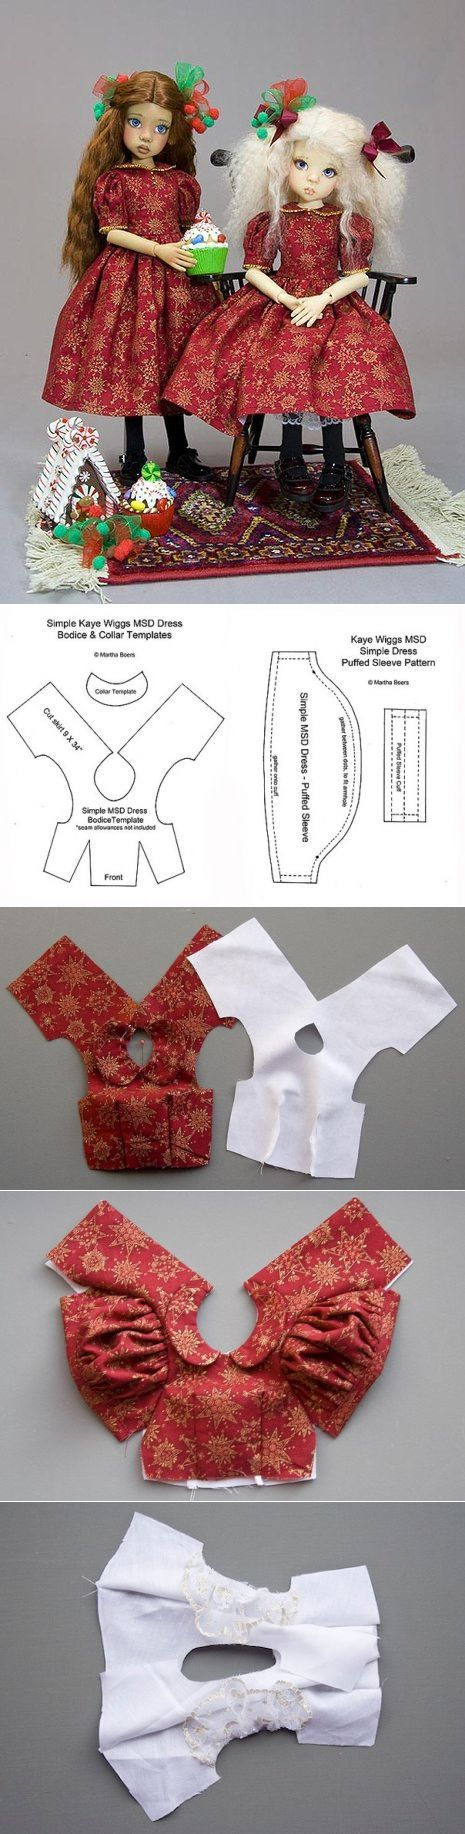 Dress and apron for the doll * Pattern * PHOTO MK